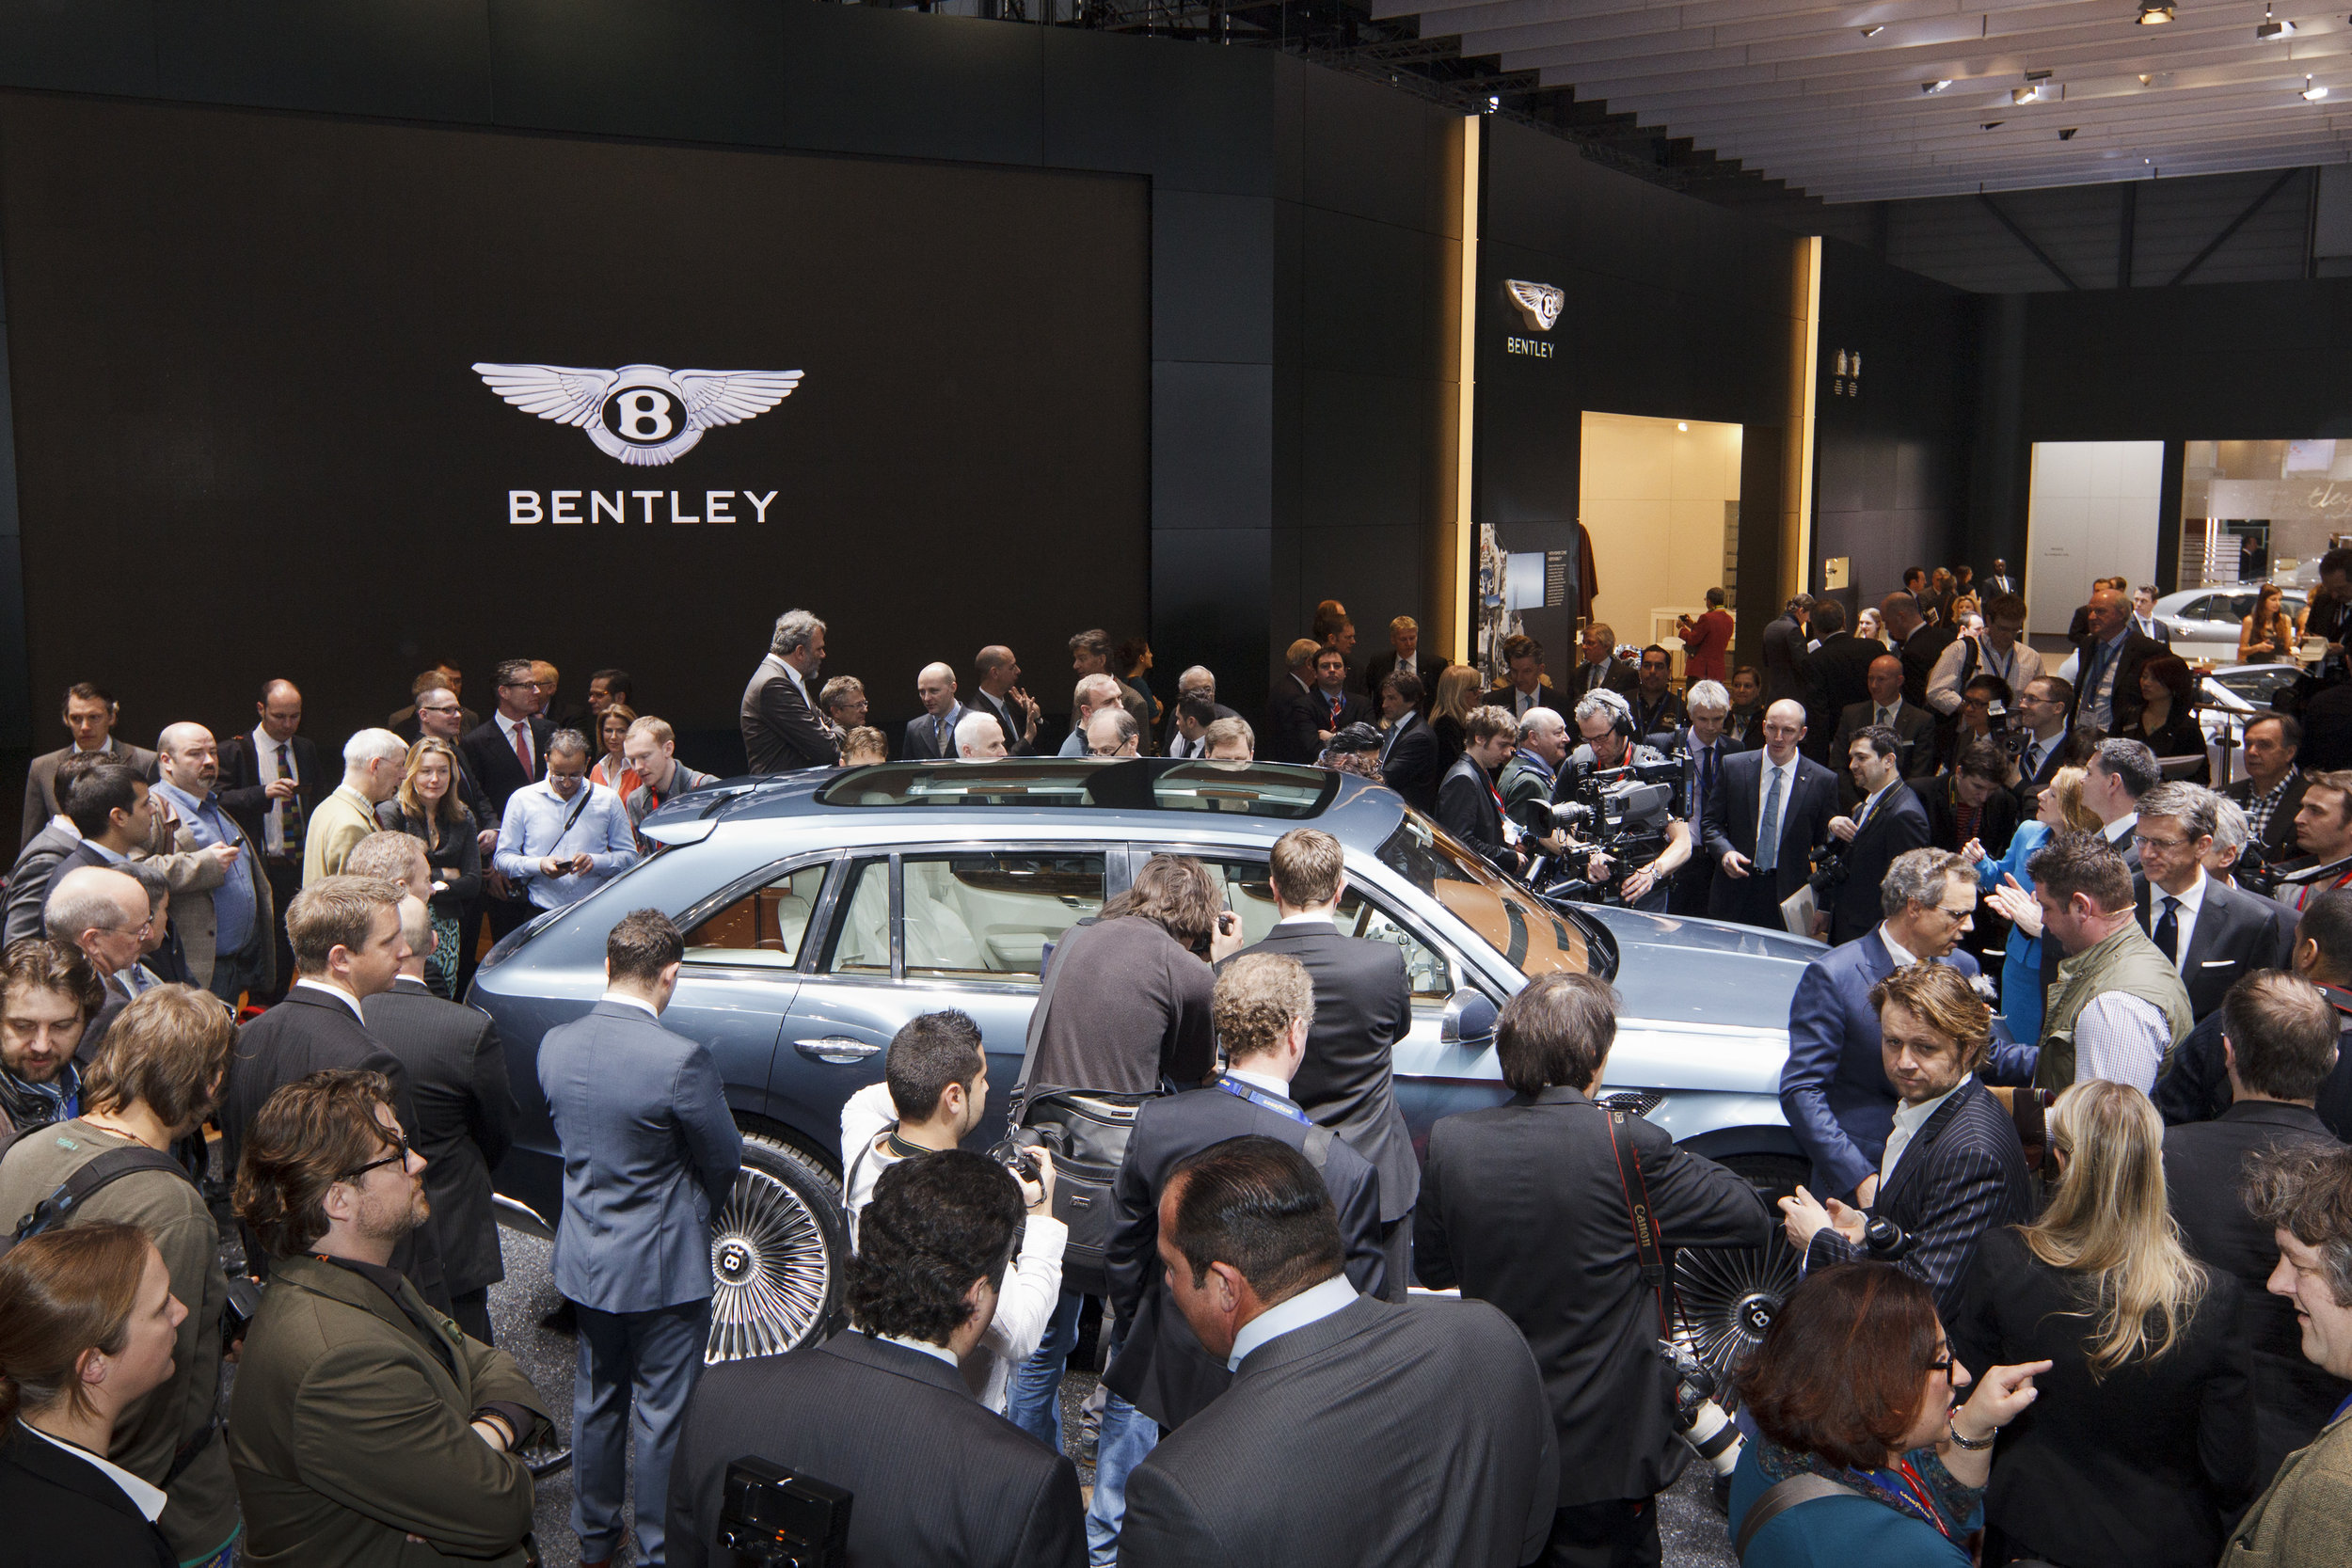 BentleyBentayaga_website6.jpg